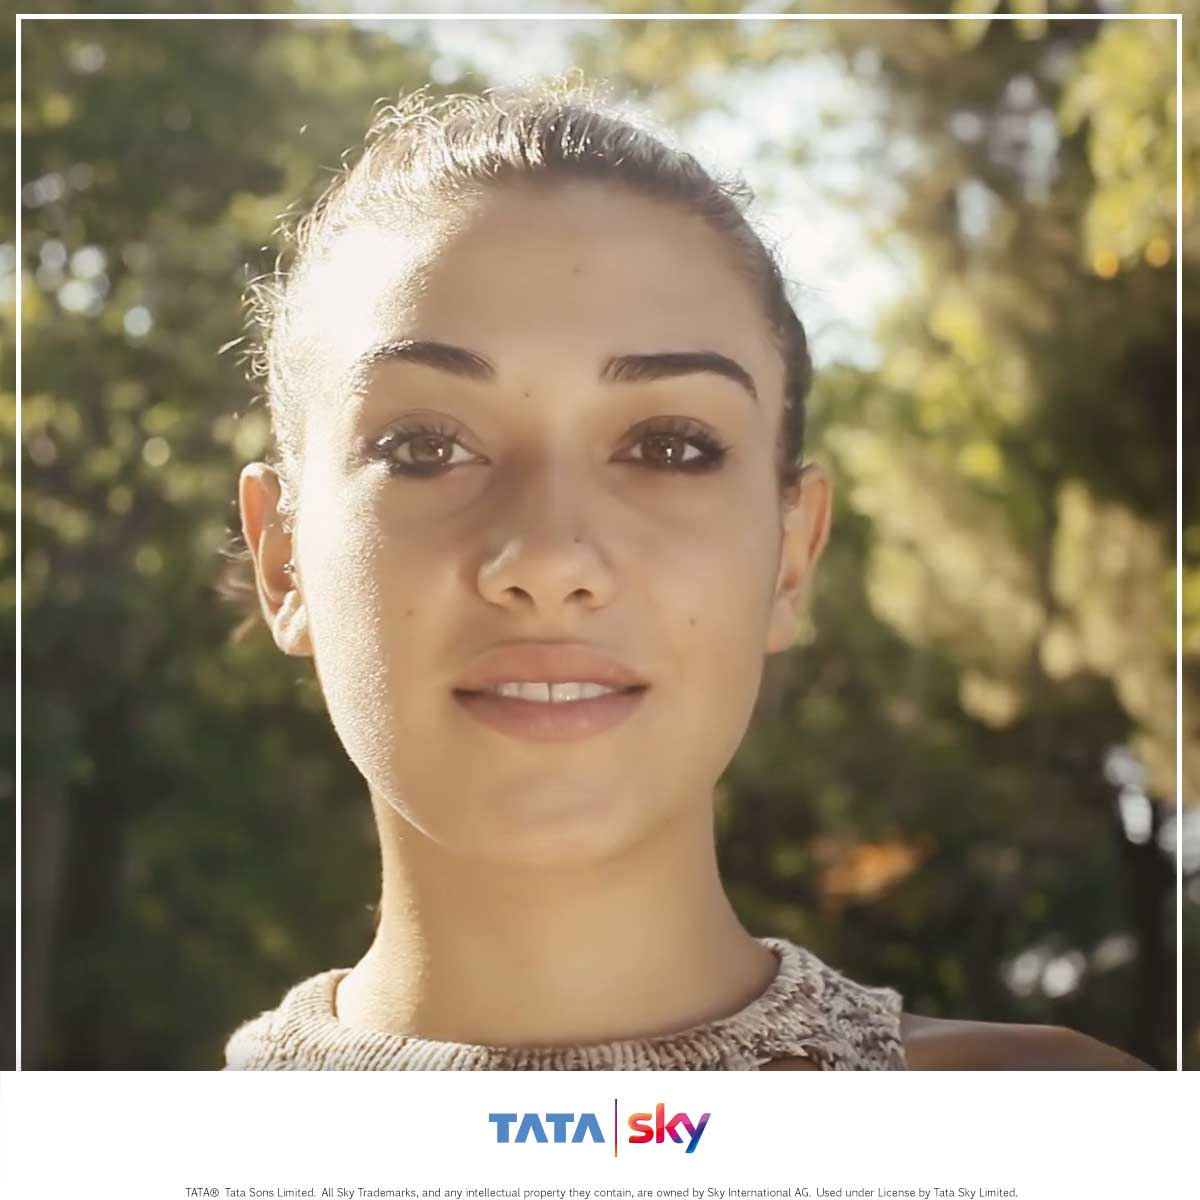 Tata Sky Blogbuster - Light Selfie